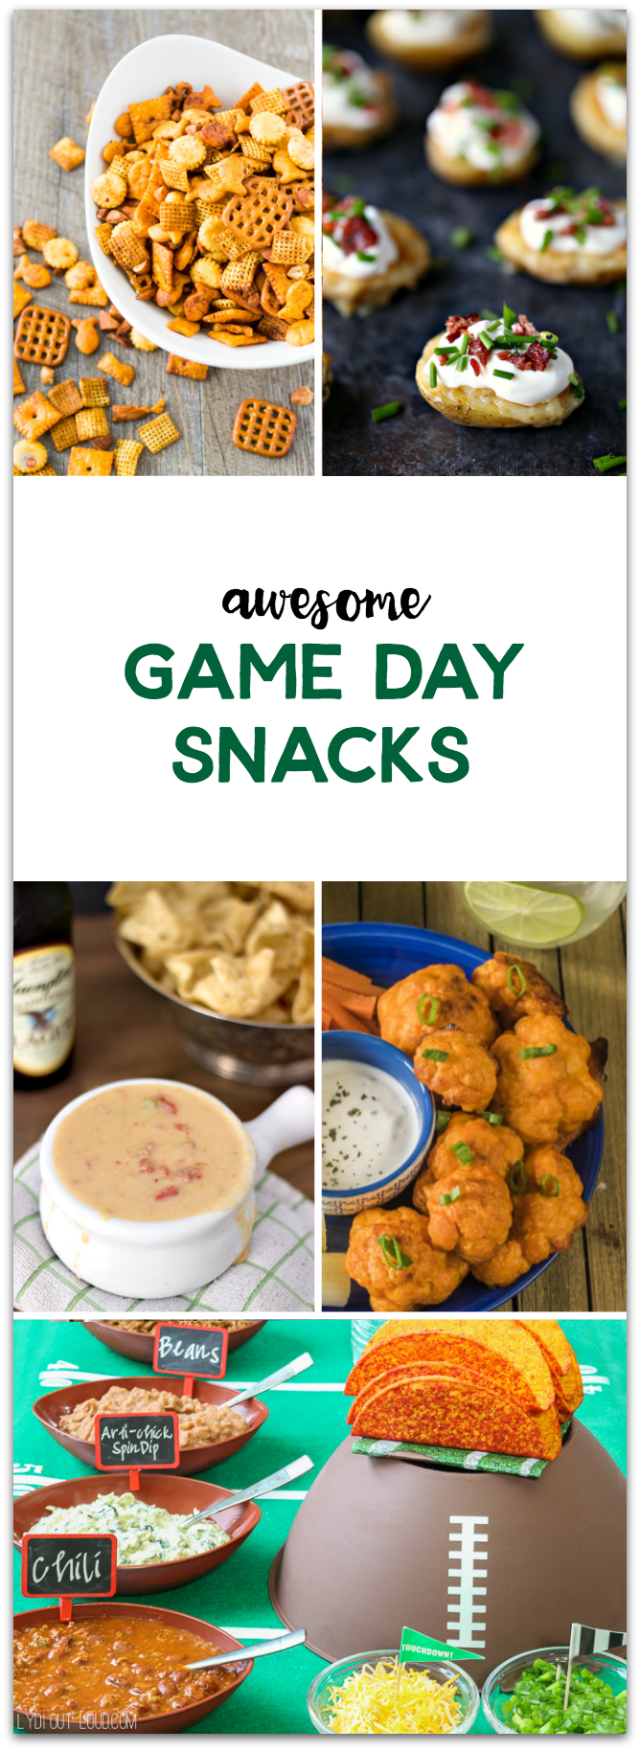 Awesome snacks for the BIG GAME! Get some great recipes in this roundup! TablerPartyofTwo.com